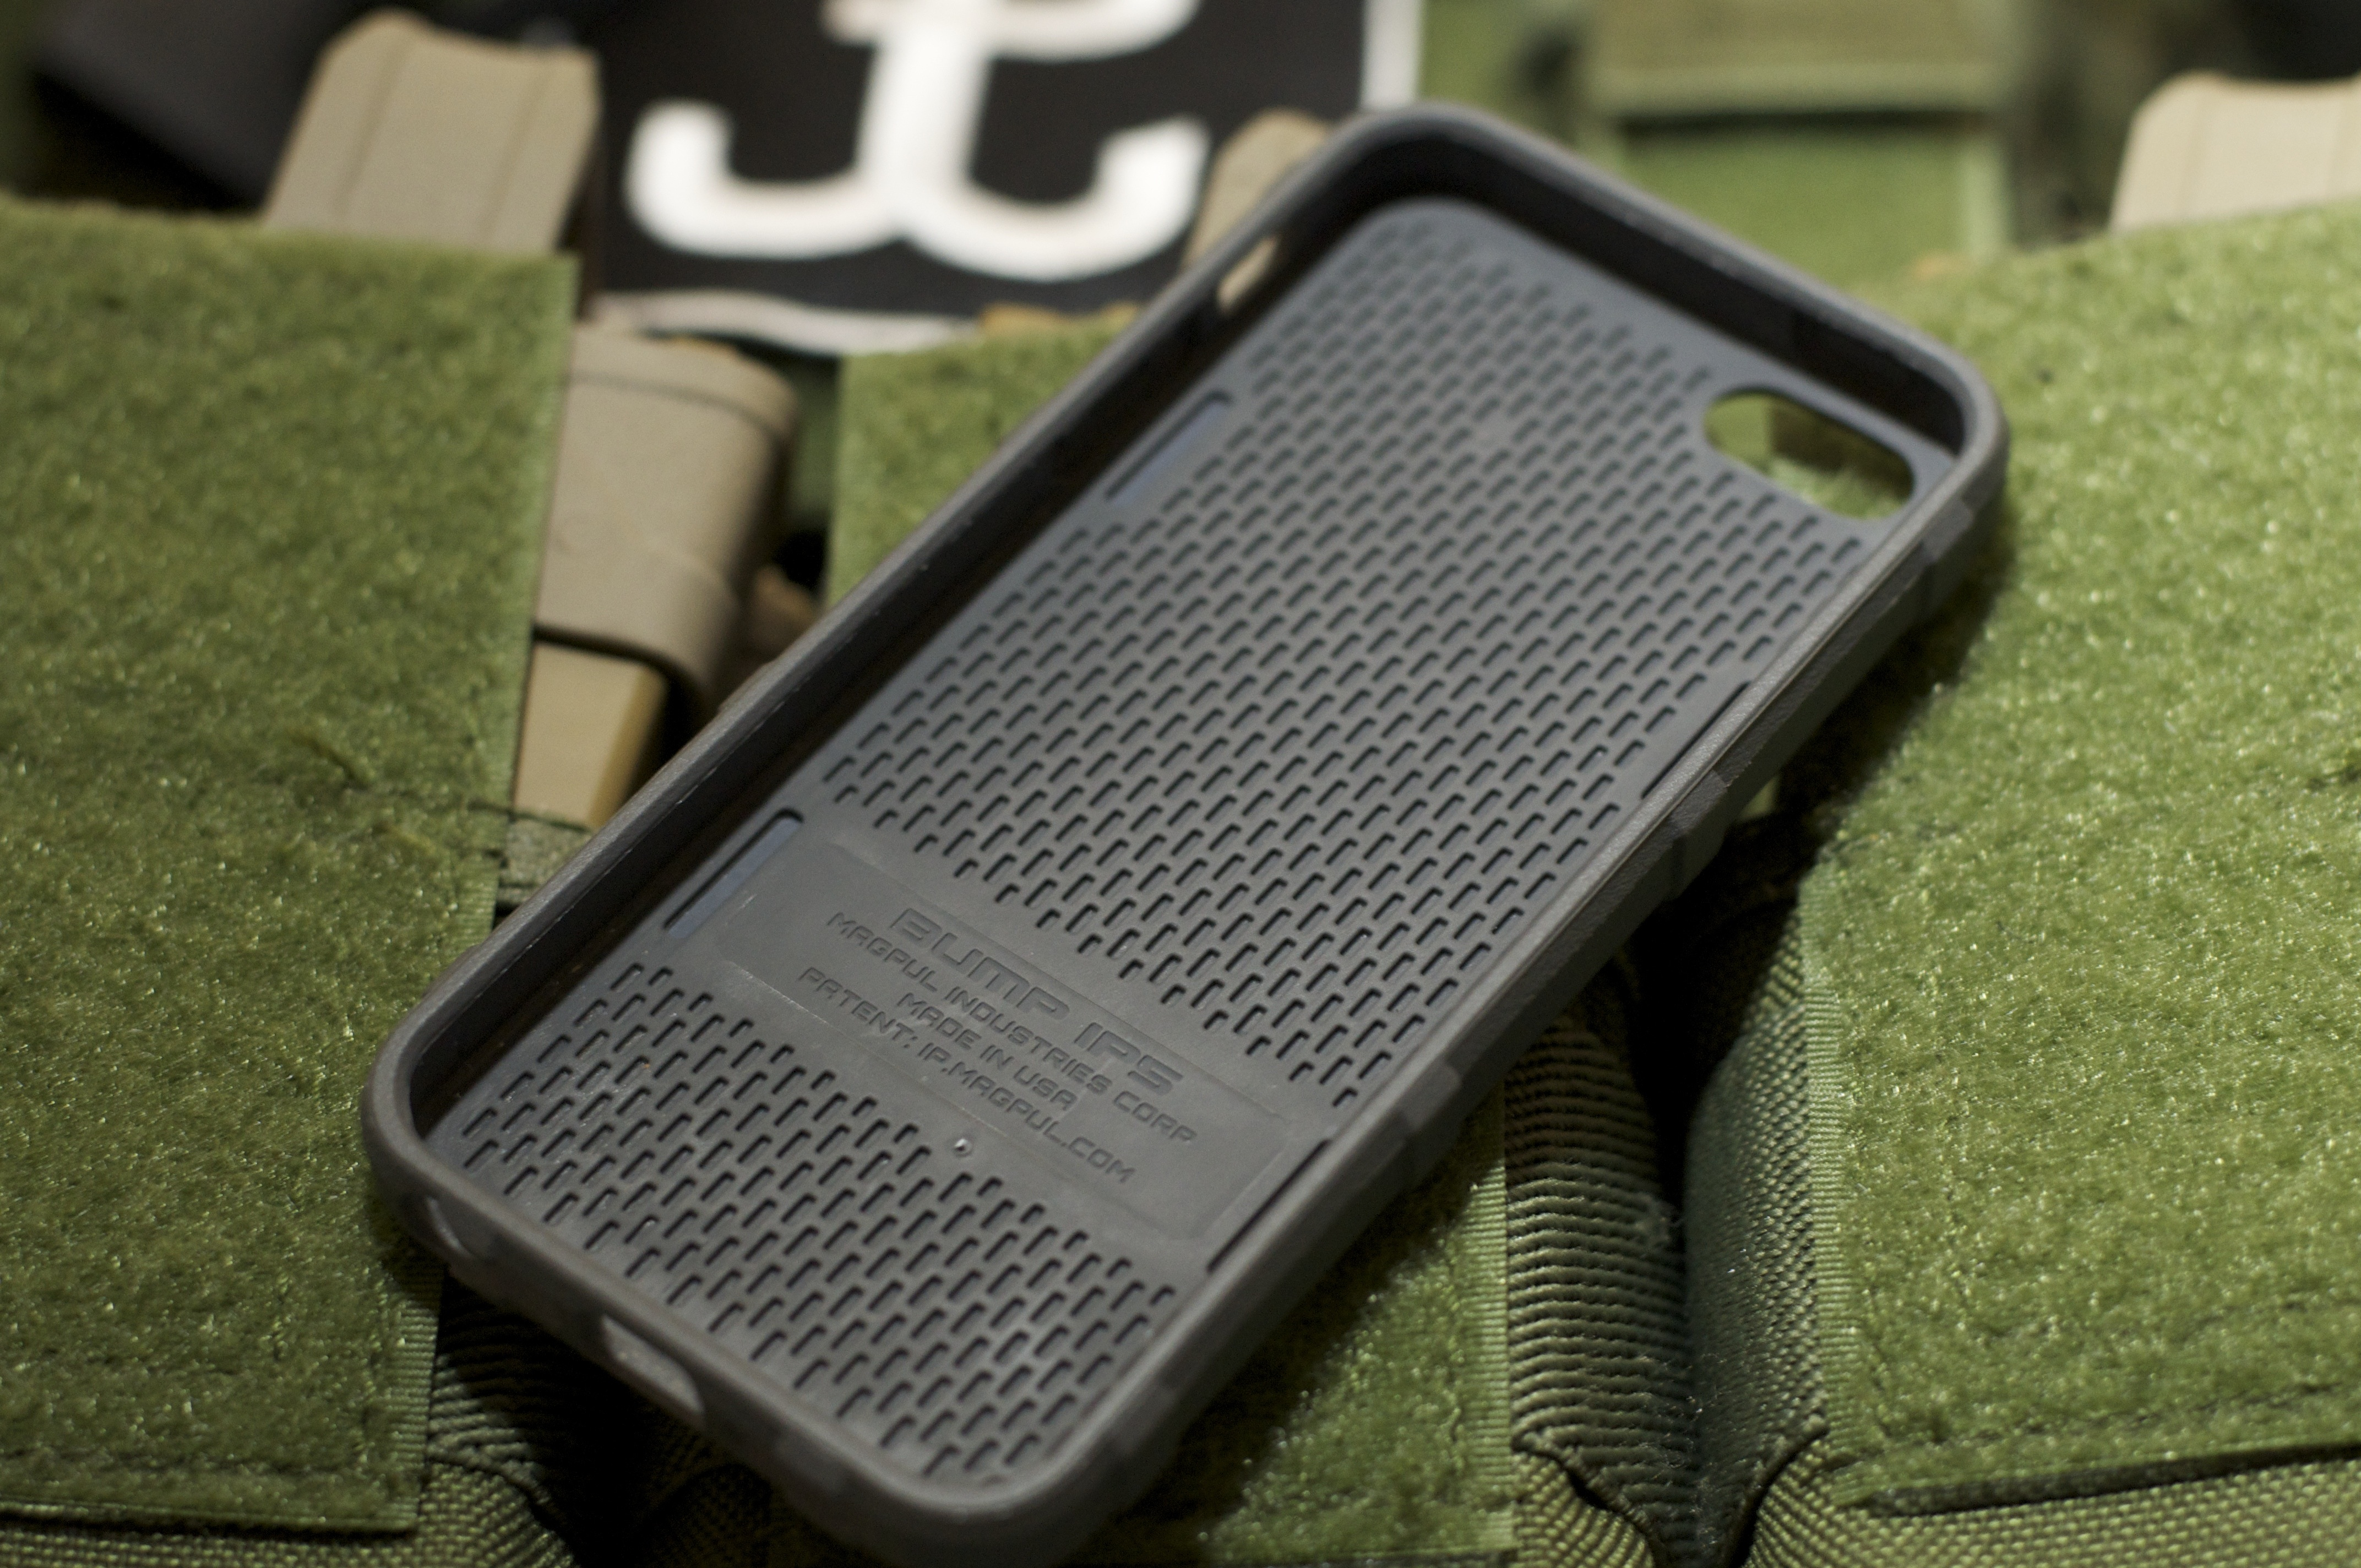 Magpul Bump Case for the new iPhone 5/5s